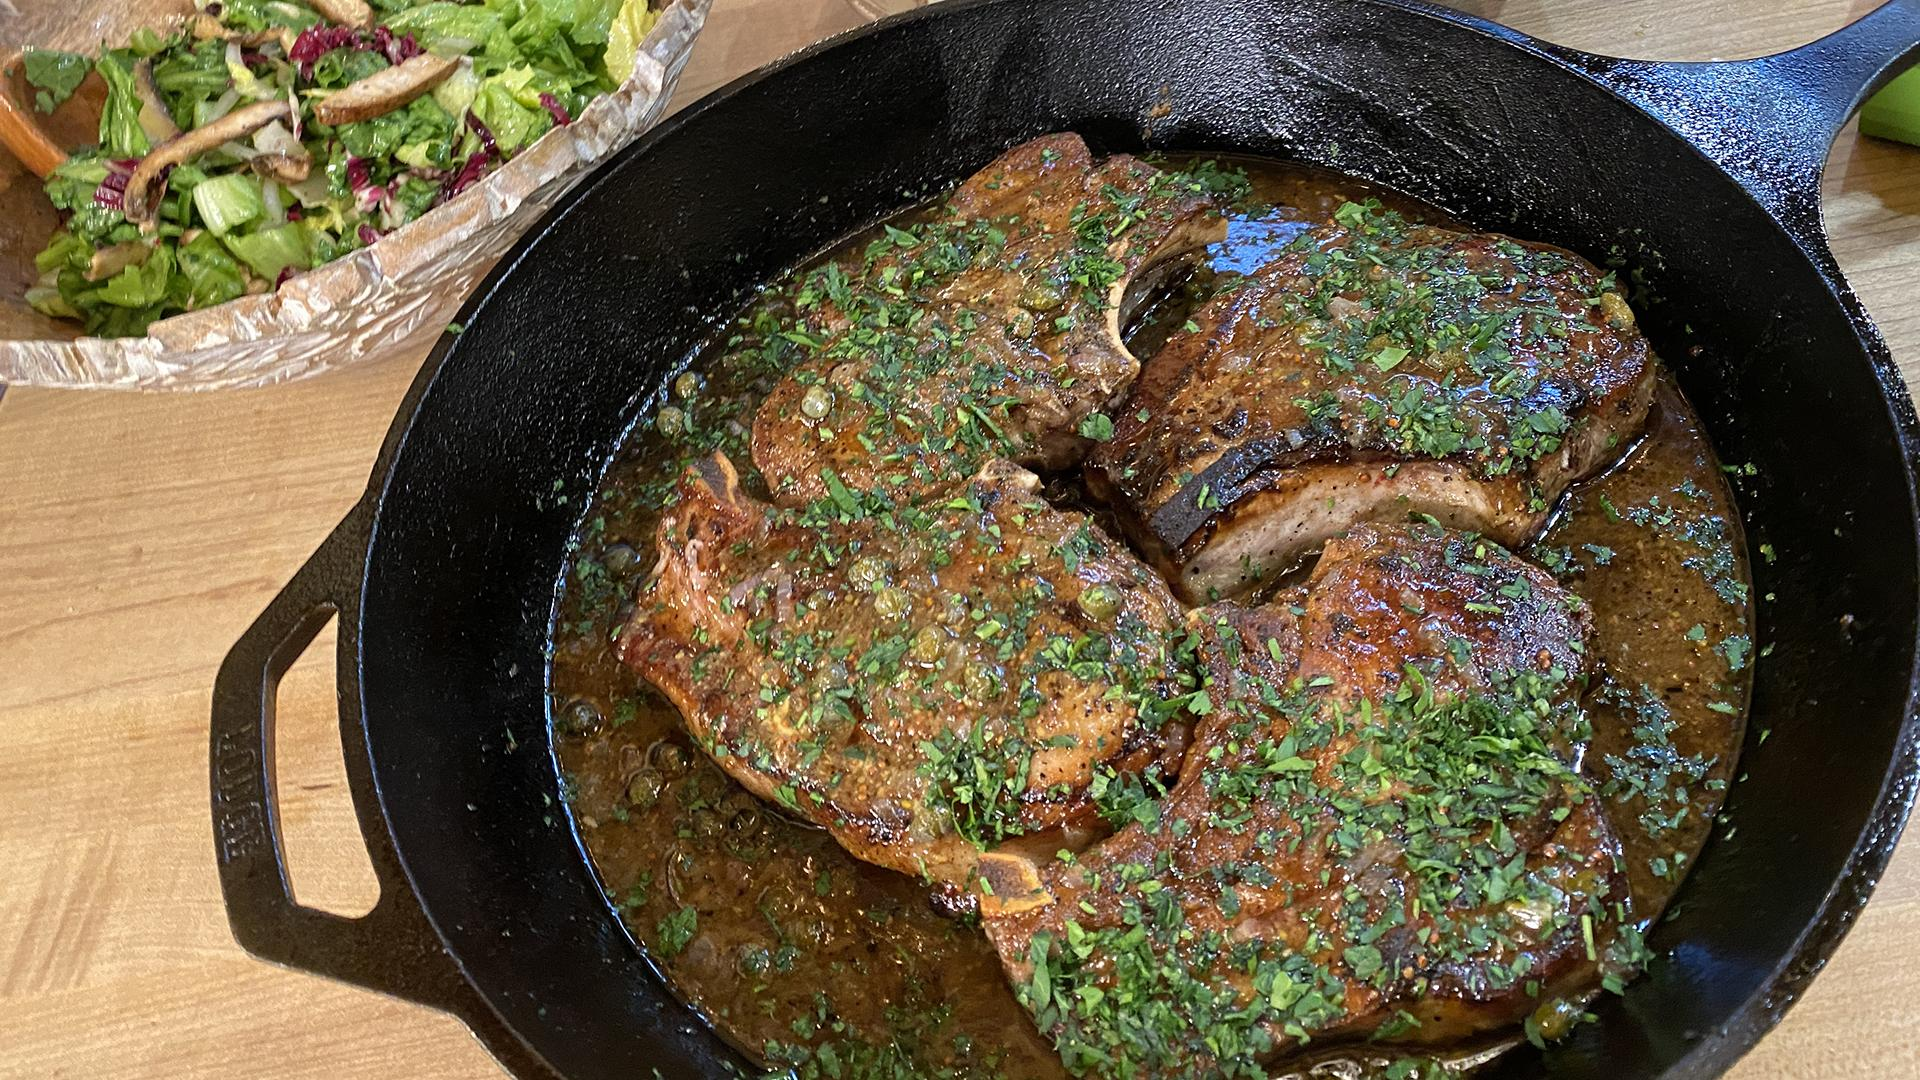 Pork Chops with Maple, Mustard & Capers